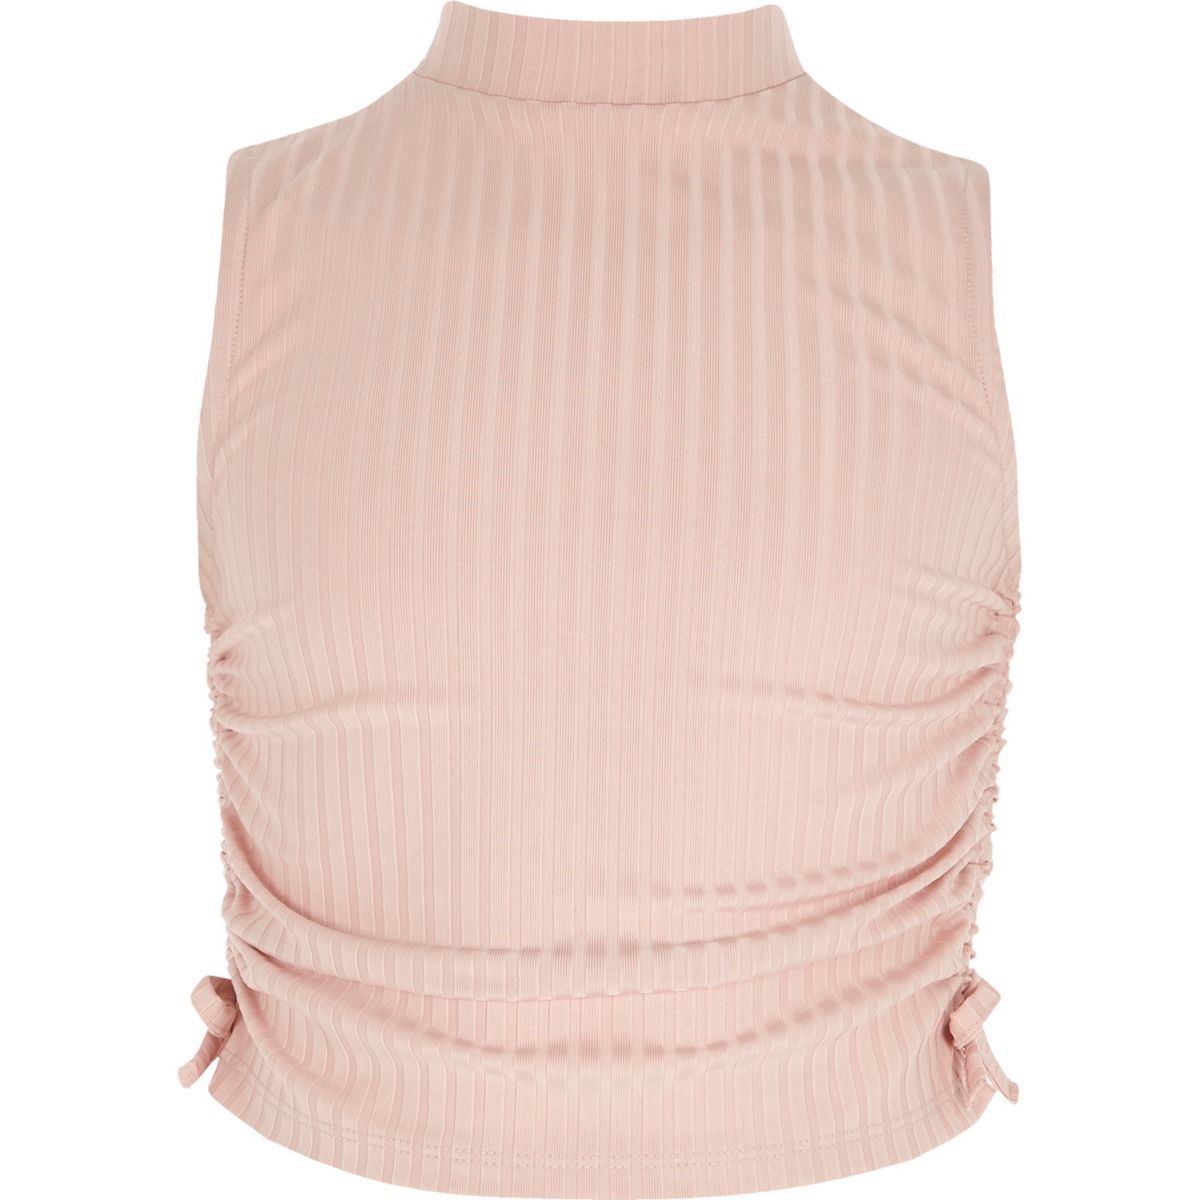 Girls pink ruched high neck sleeveless top